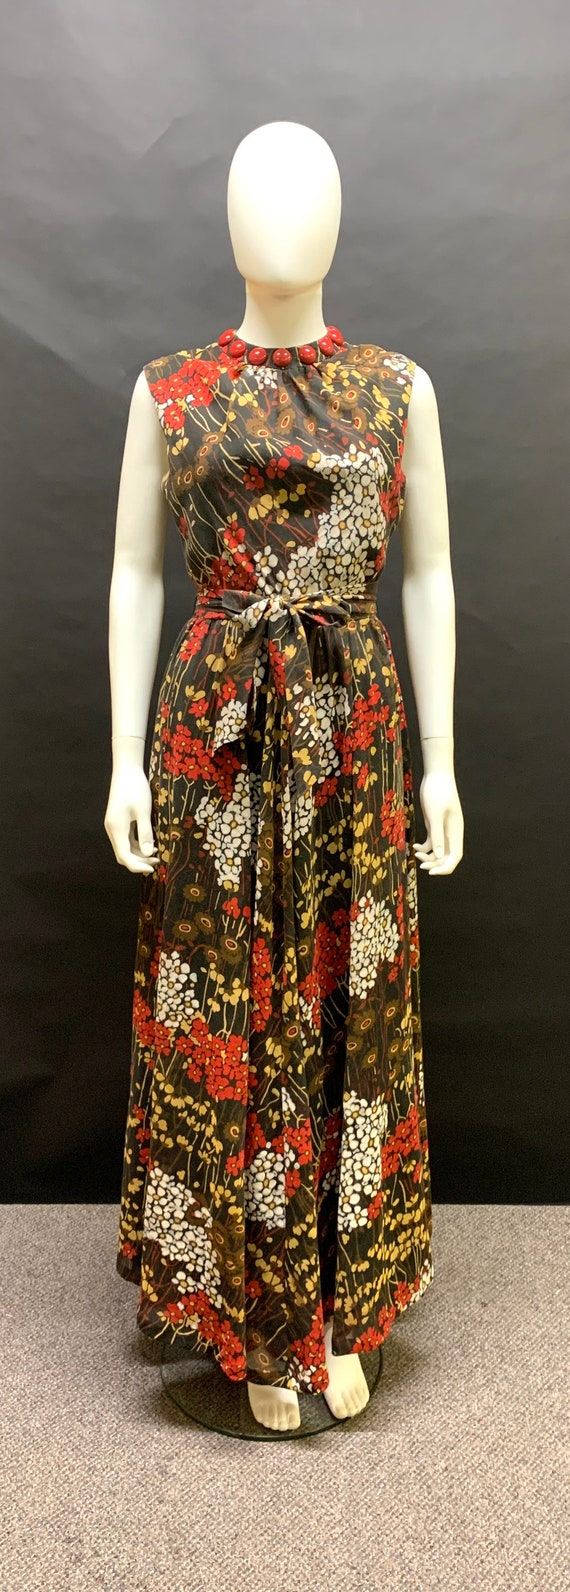 Lovely 1970s maxi dress